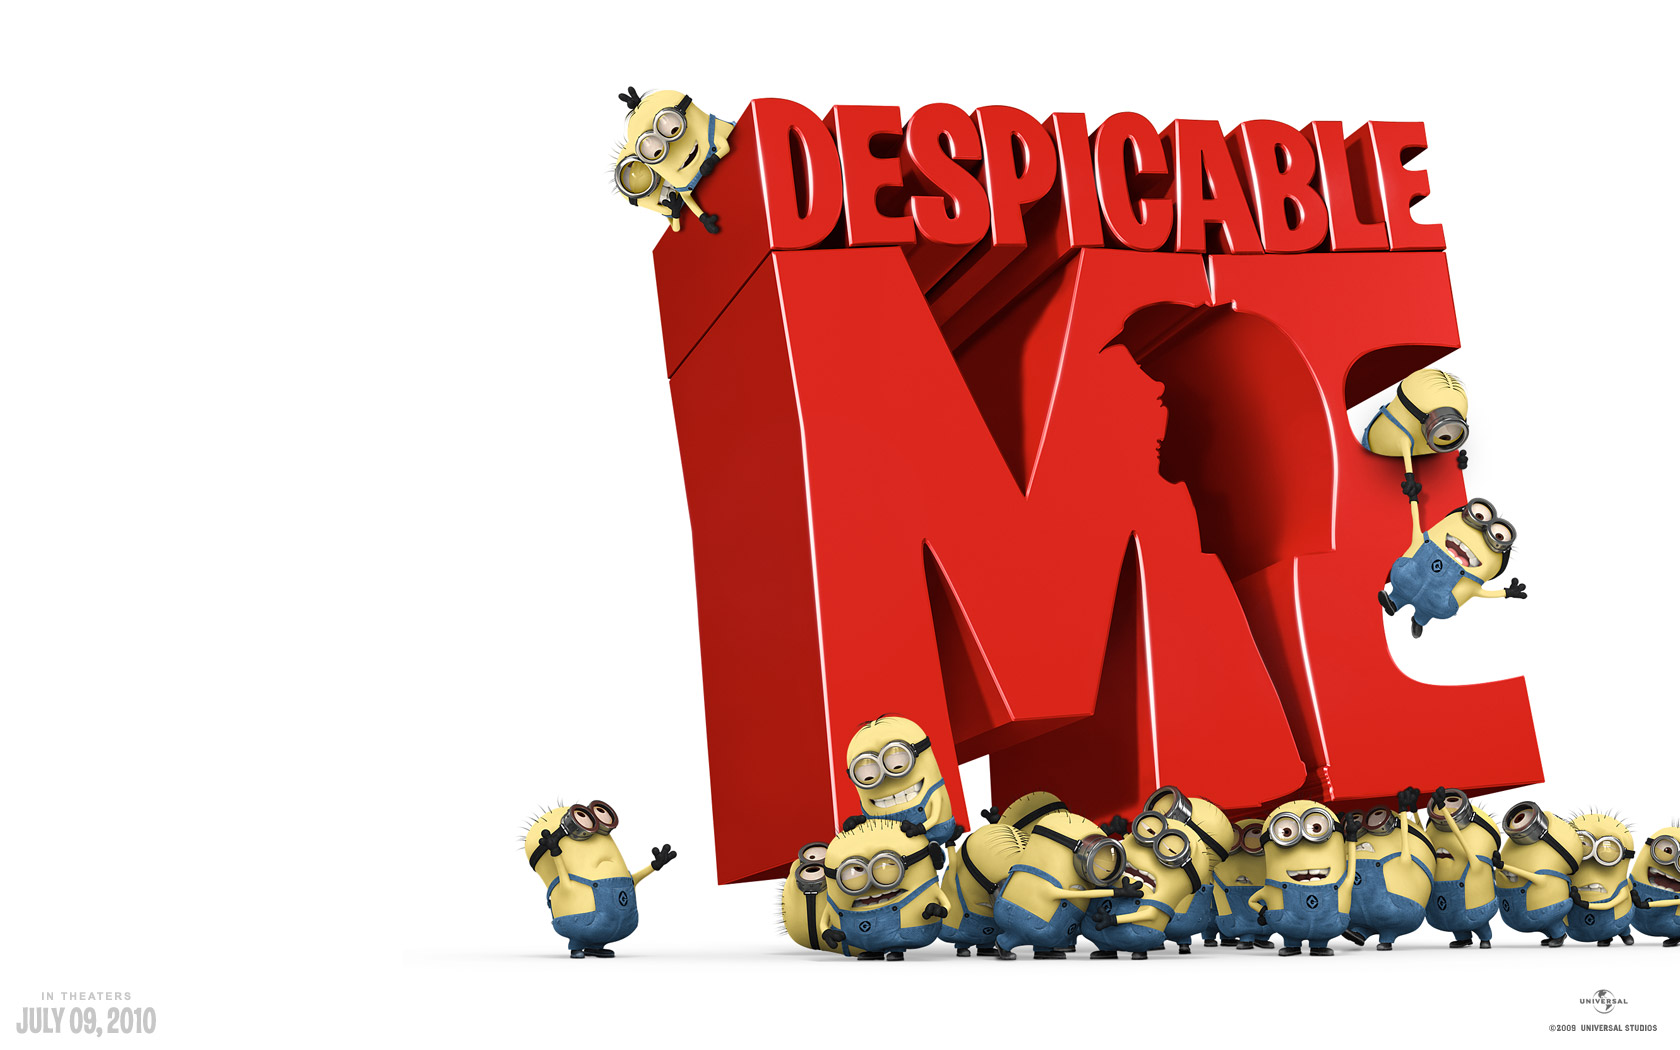 despicable me Trailer, images, cast info, and more for despicable me 2 on regmoviescom, the site for movie lovers.